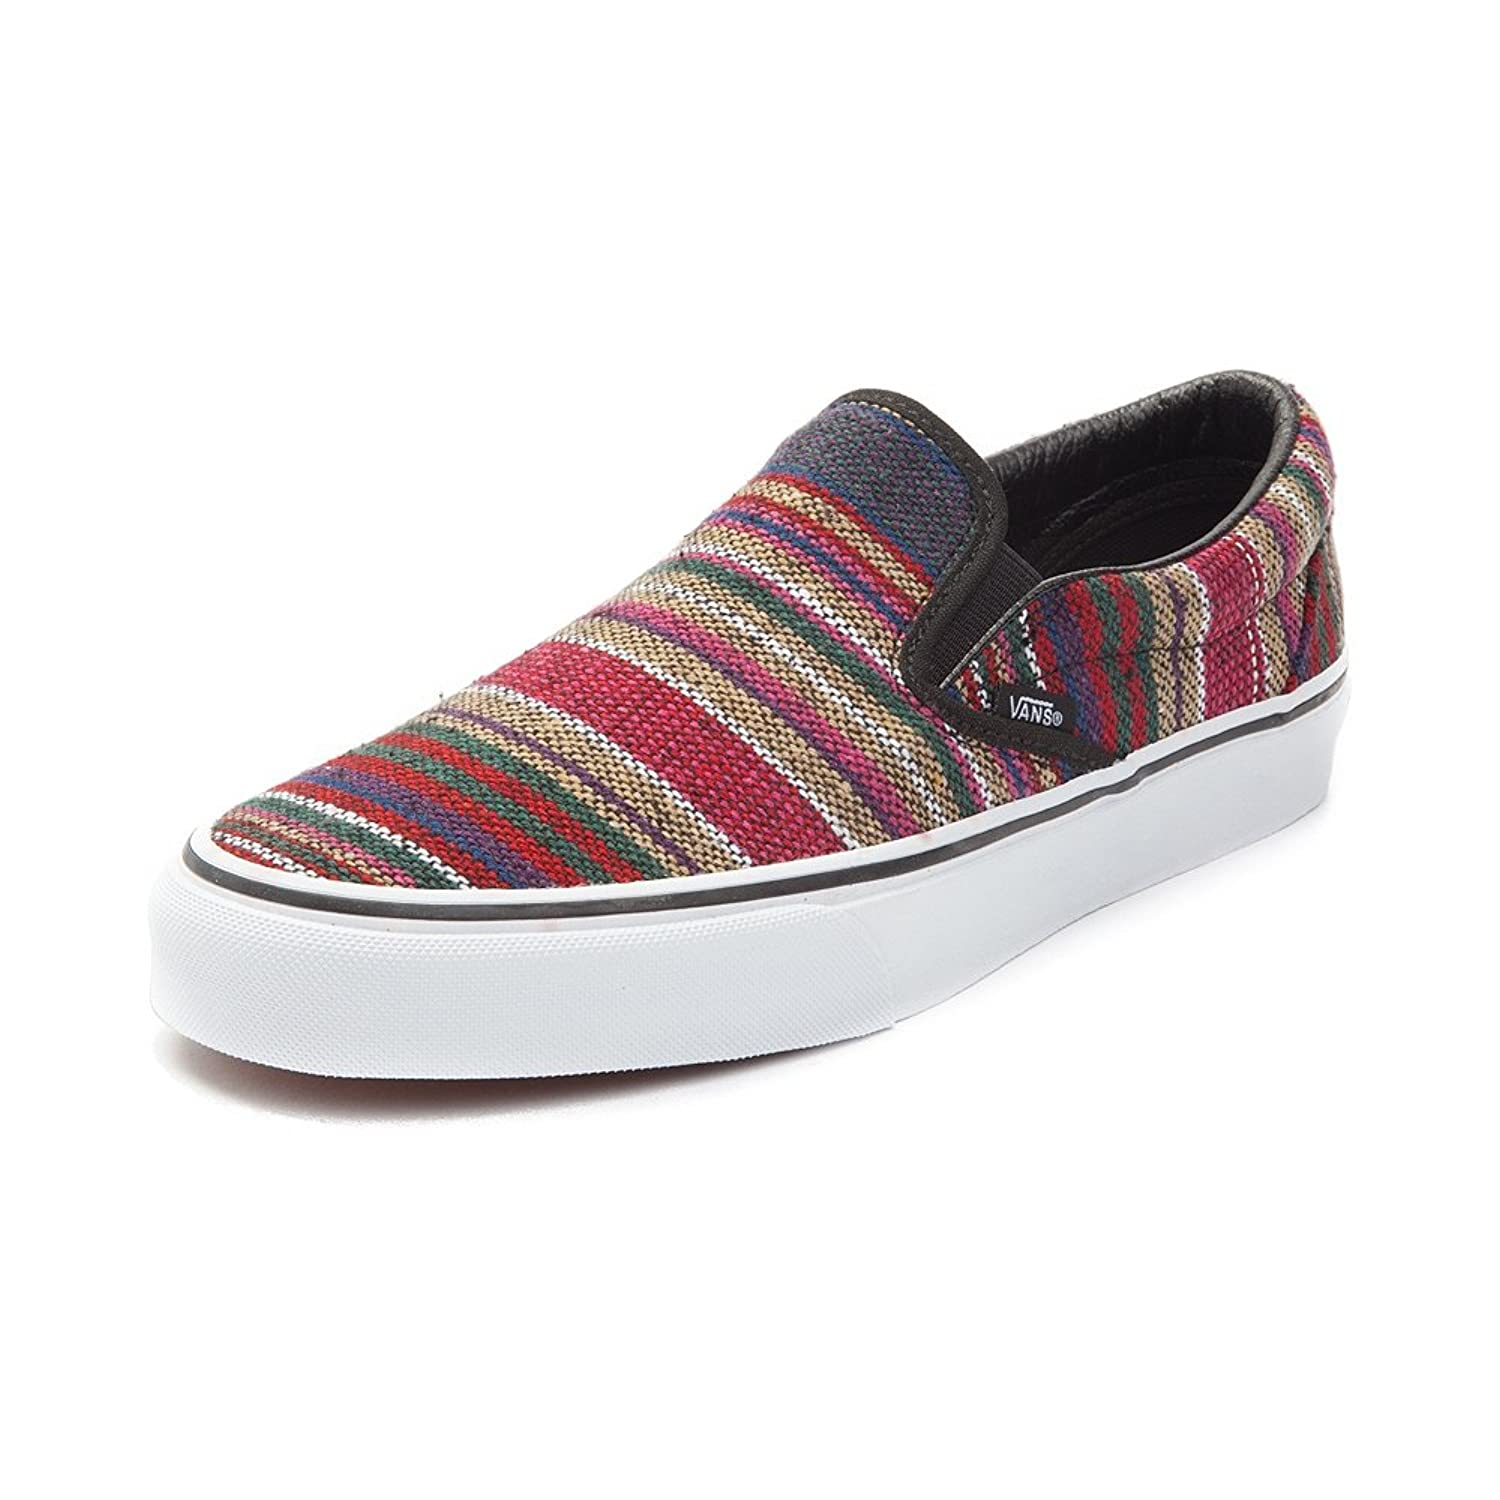 bc125463e33 Vans Authentic Skate Shoe (Mens 7 Womens 8.5